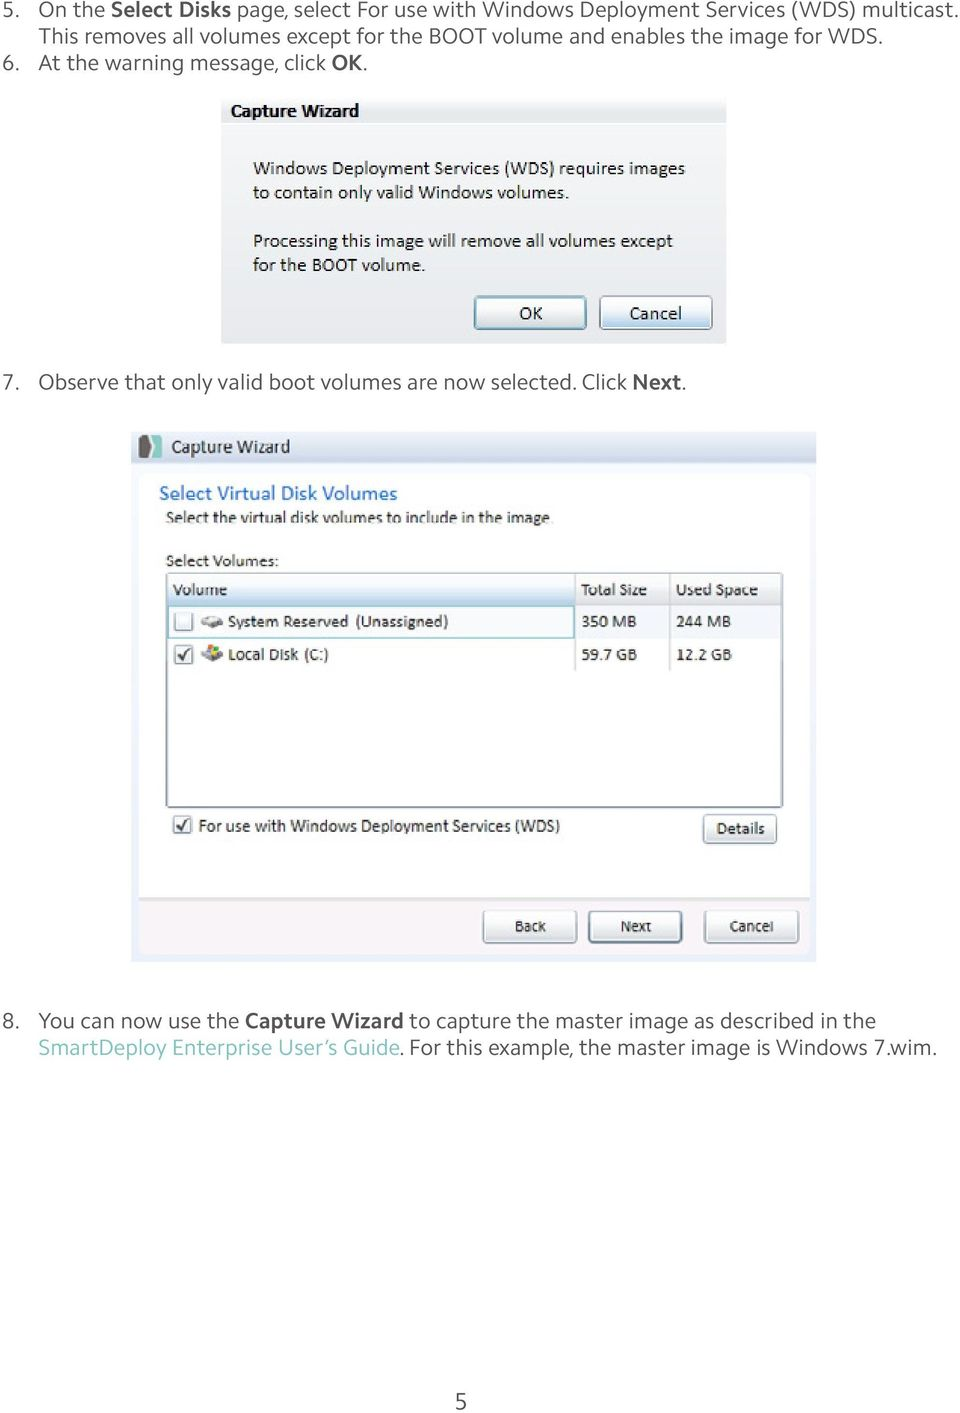 How to Integrate SmartDeploy with Windows Deployment